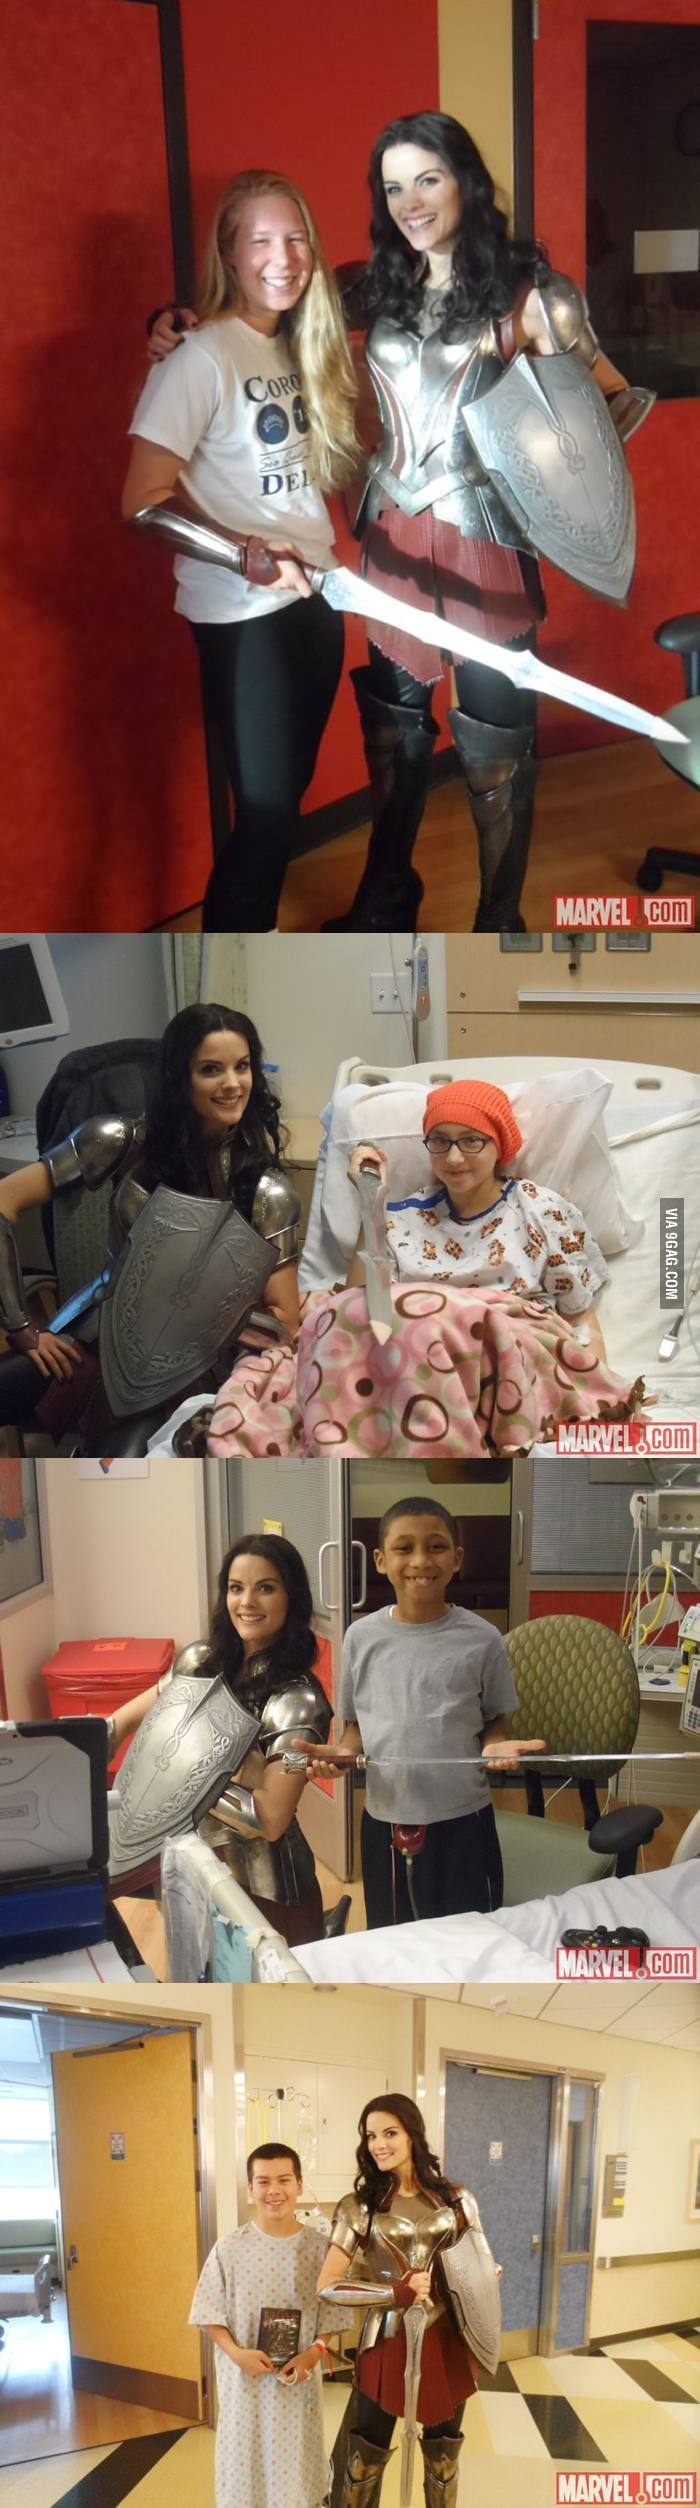 Jaimie Alexander (Lady Sif) visits sick kids in full costume.